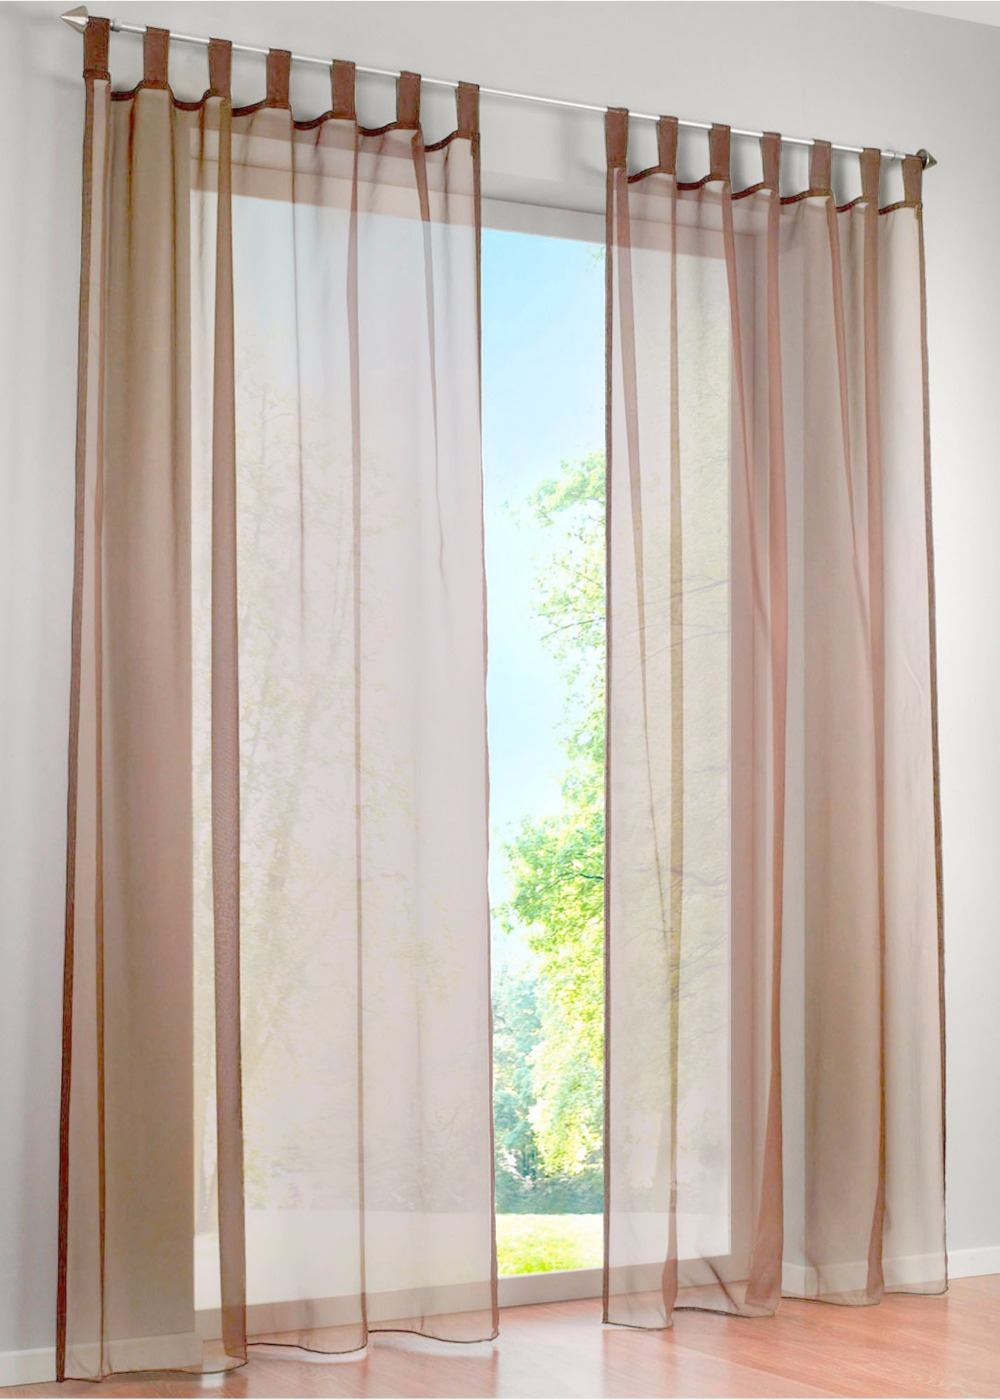 Simple window curtains - Hot Sale High Quality Western Simple Voile Solid Color Sheer Window Curtains Free Shipping A Pair